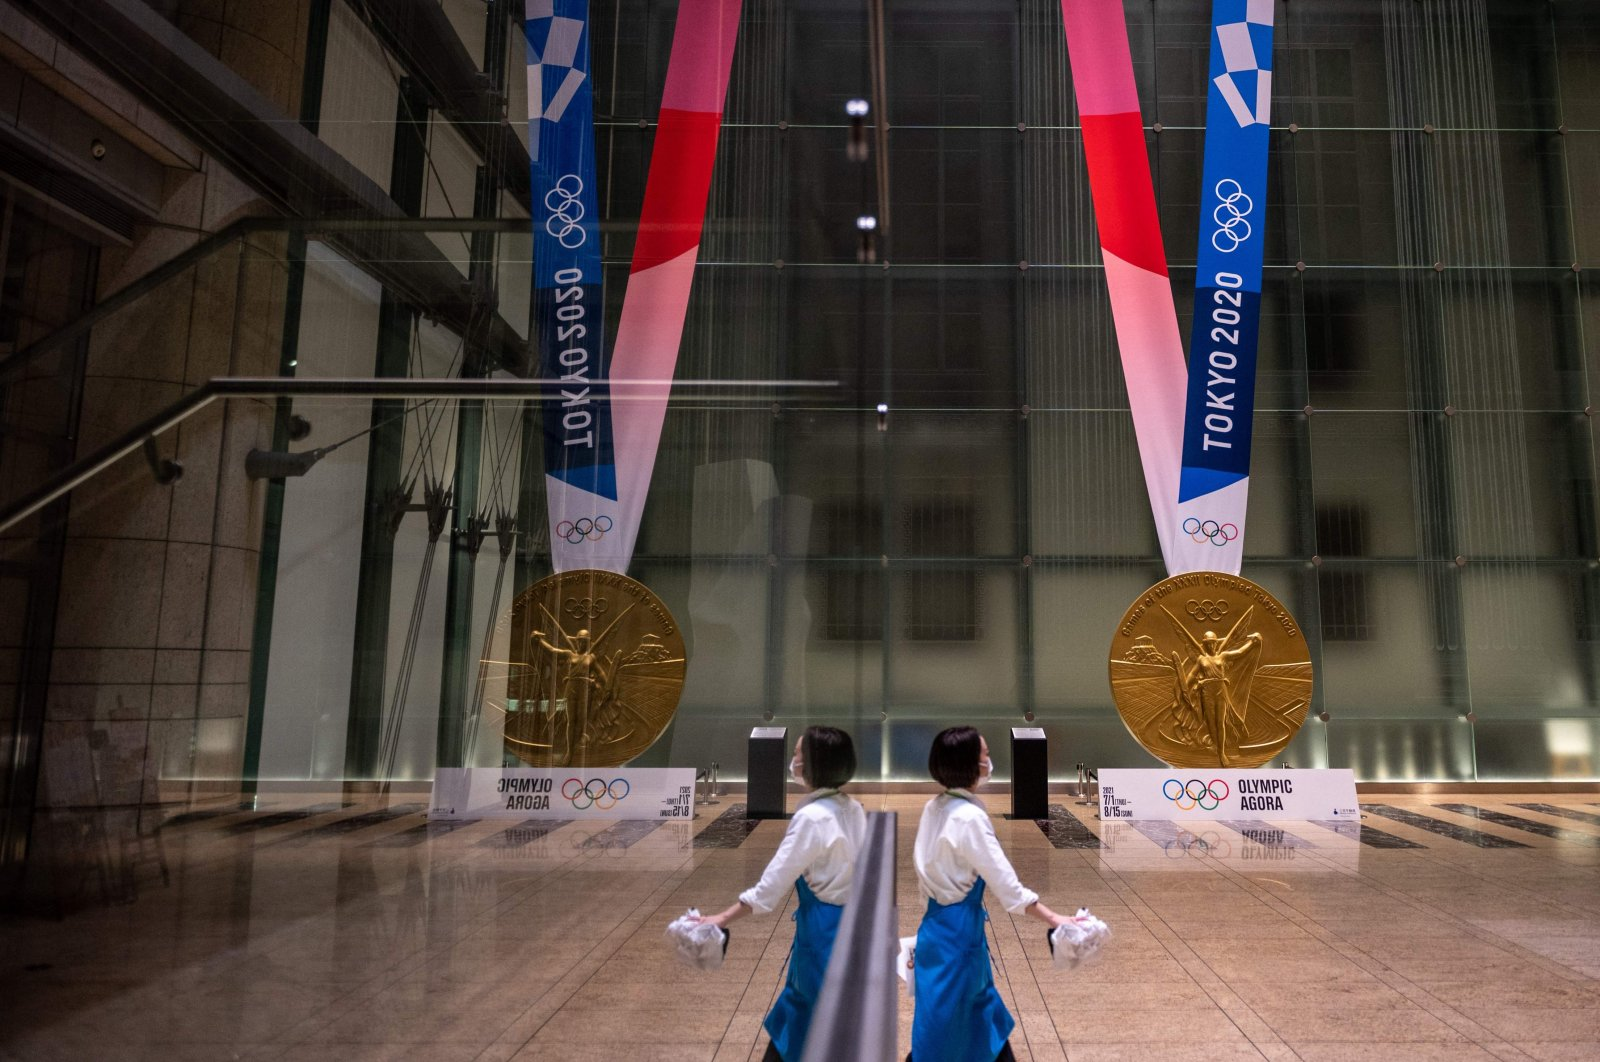 A woman walks near a large-scale reproduction of the Tokyo 2020 Olympic Games gold medal as part of the Olympic Agora event at Mitsui Tower, Tokyo, Japan, July 14, 2021. (AFP Photo)